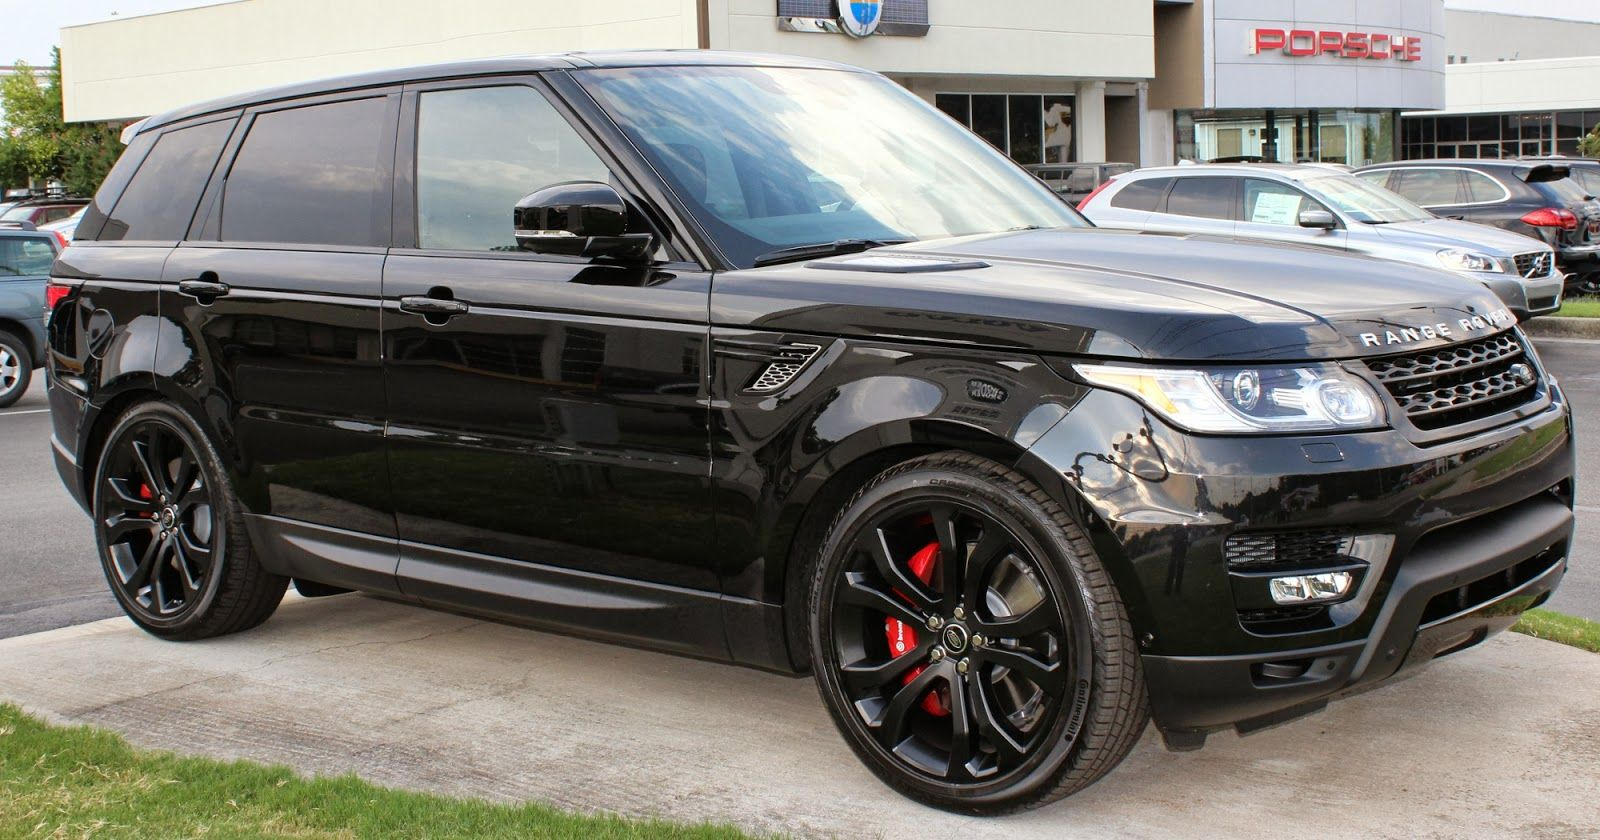 pin by meschelle davis on auto candy range rover range rover sport cars. Black Bedroom Furniture Sets. Home Design Ideas